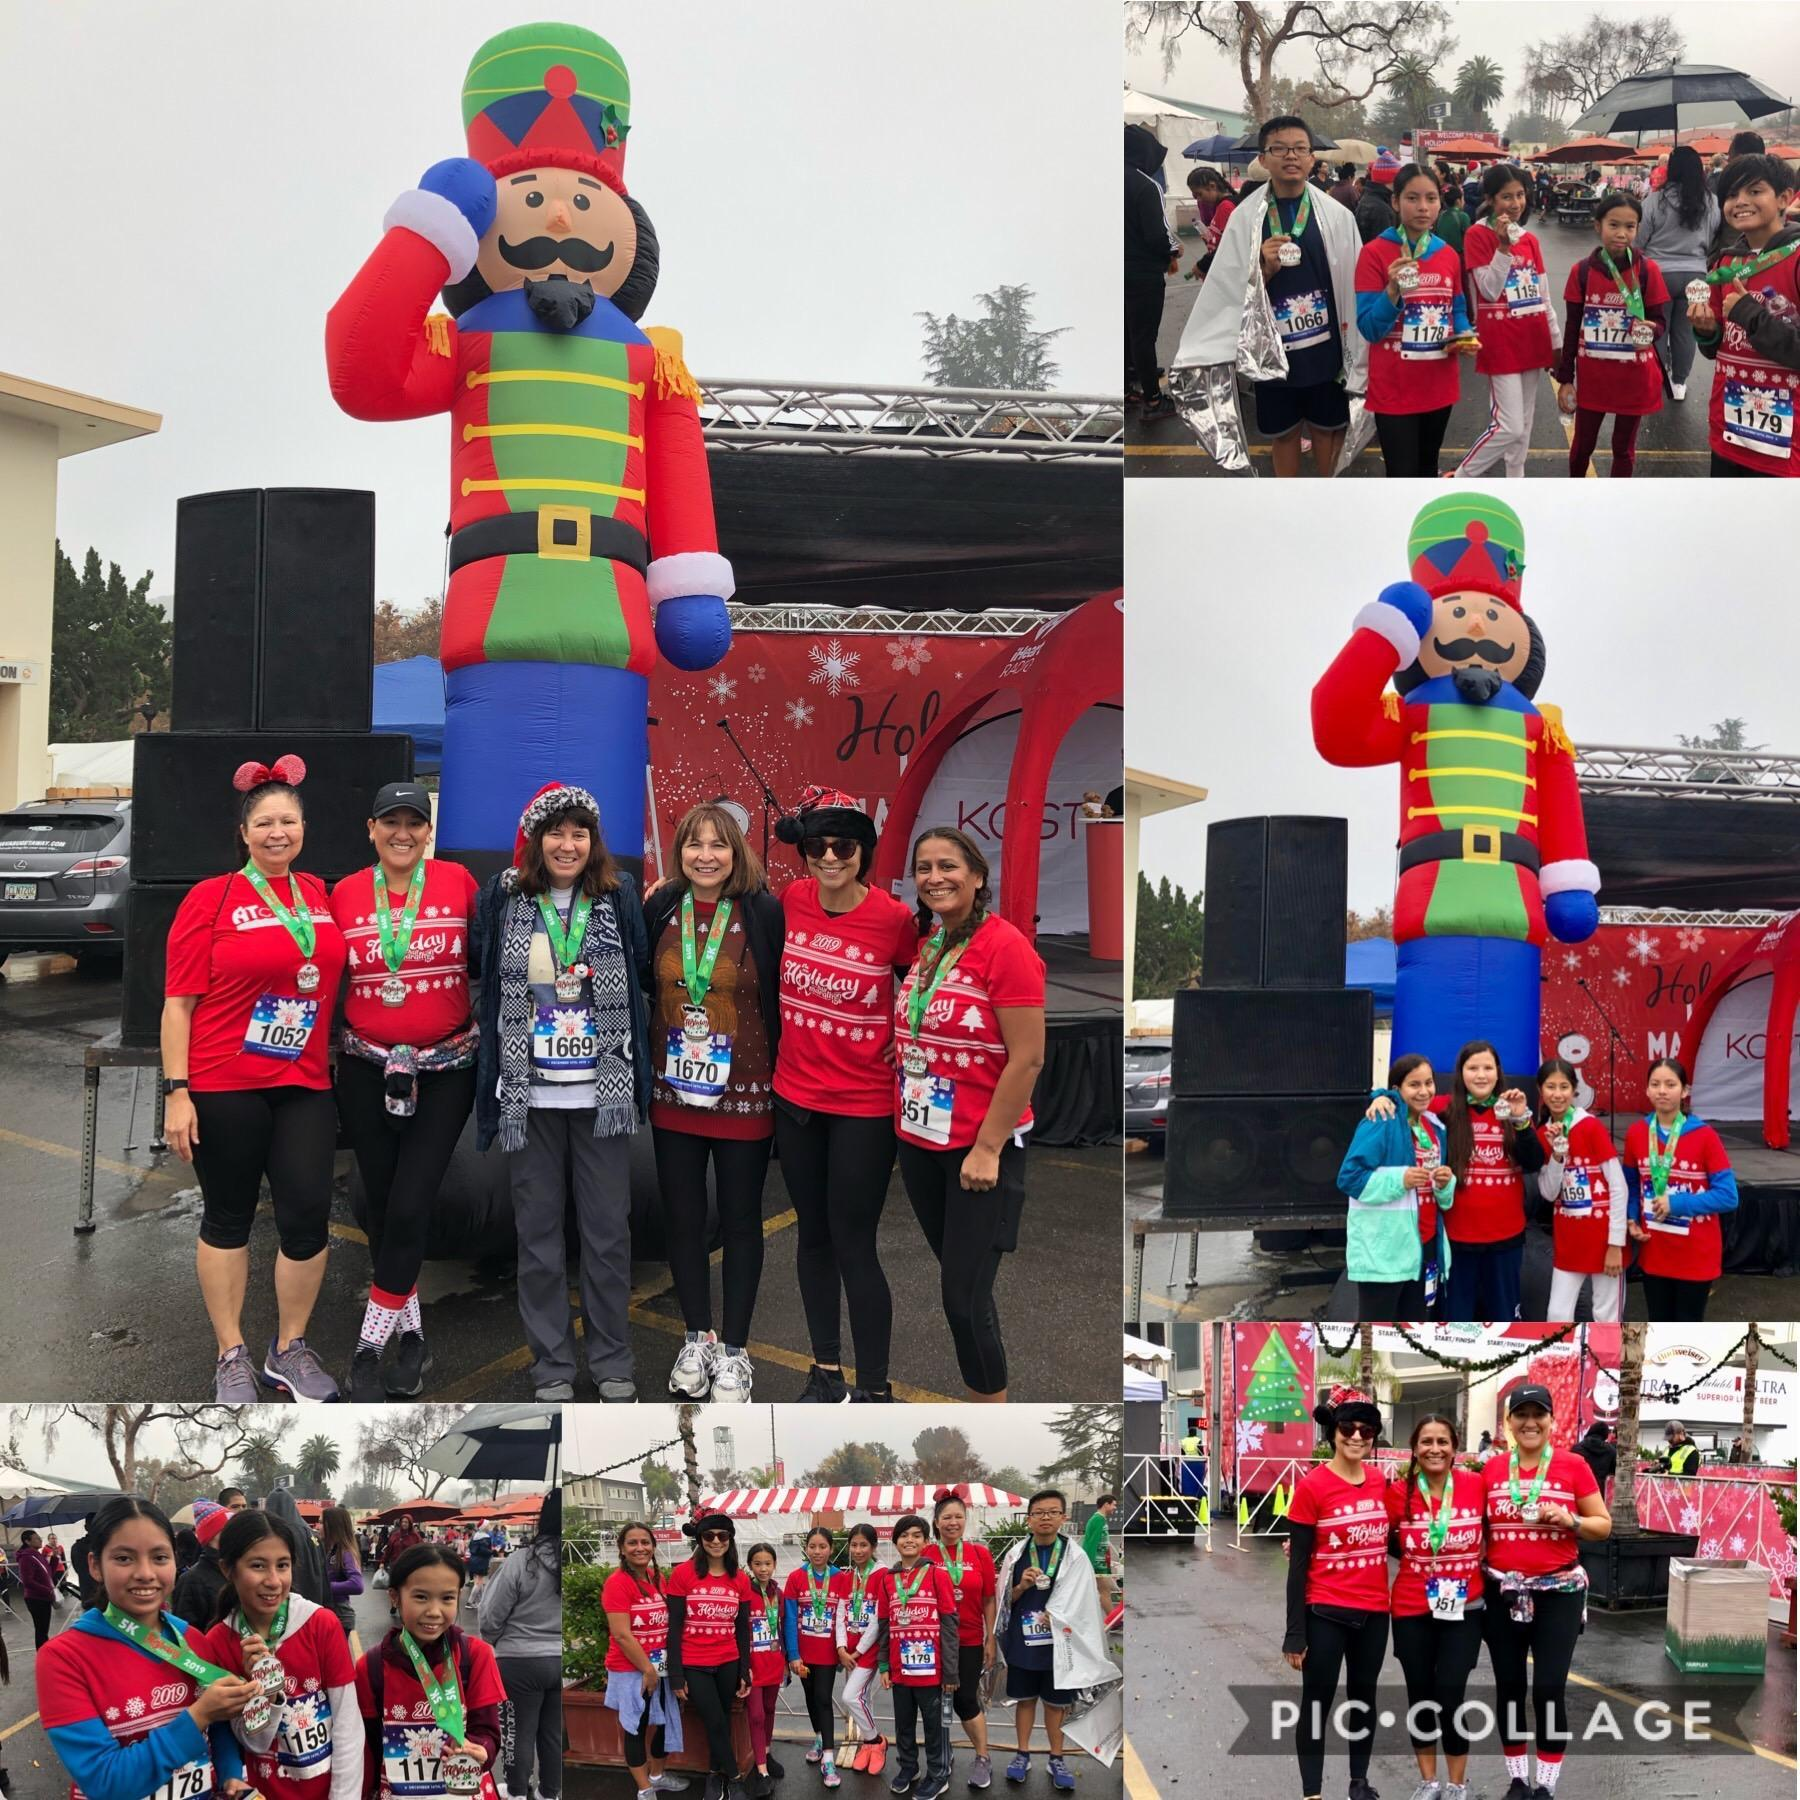 PIC OF STUDENTS AND STAFF AT 5K